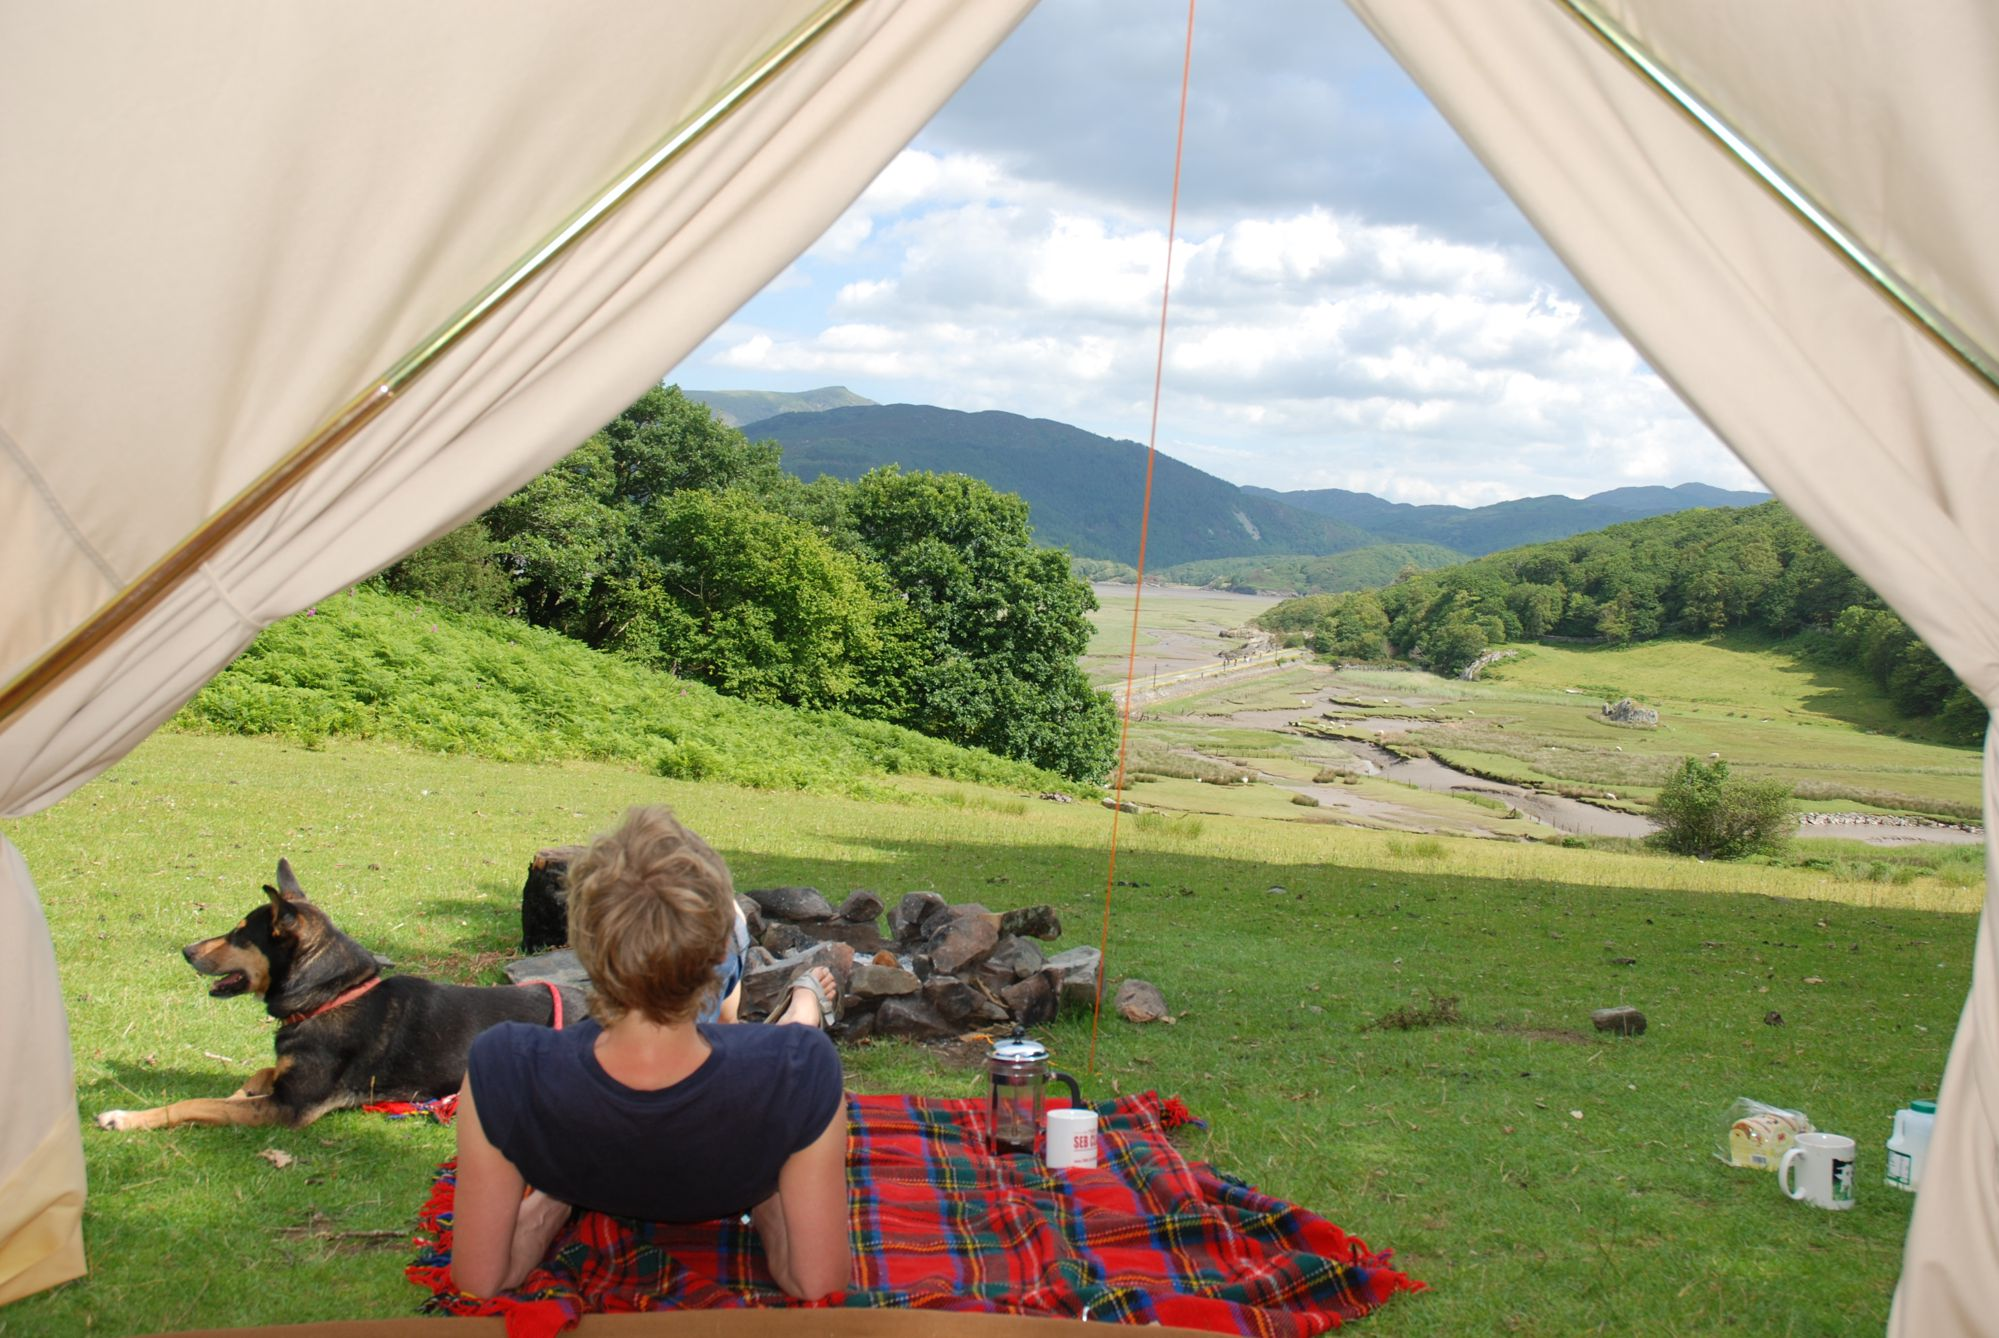 Campsites in Snowdonia National Park – Glampingly